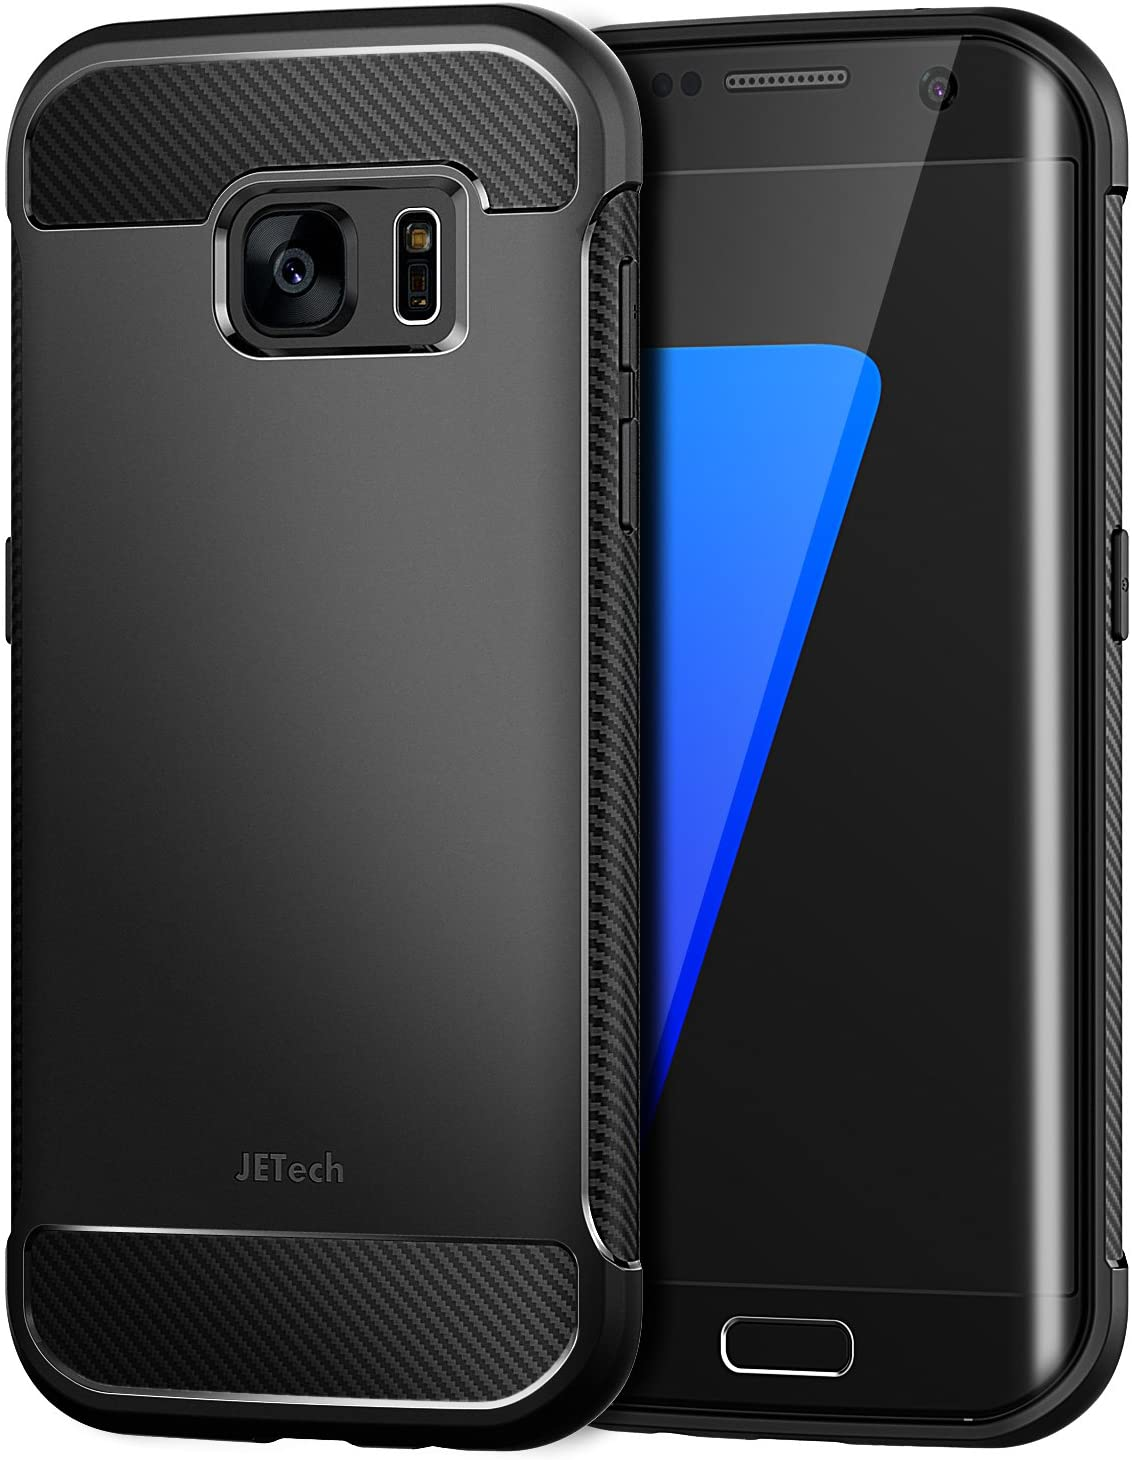 JETech Samsung Galaxy S7 Edge Protective Cover with Shock-Absorption and Carbon Fiber Design (Black)